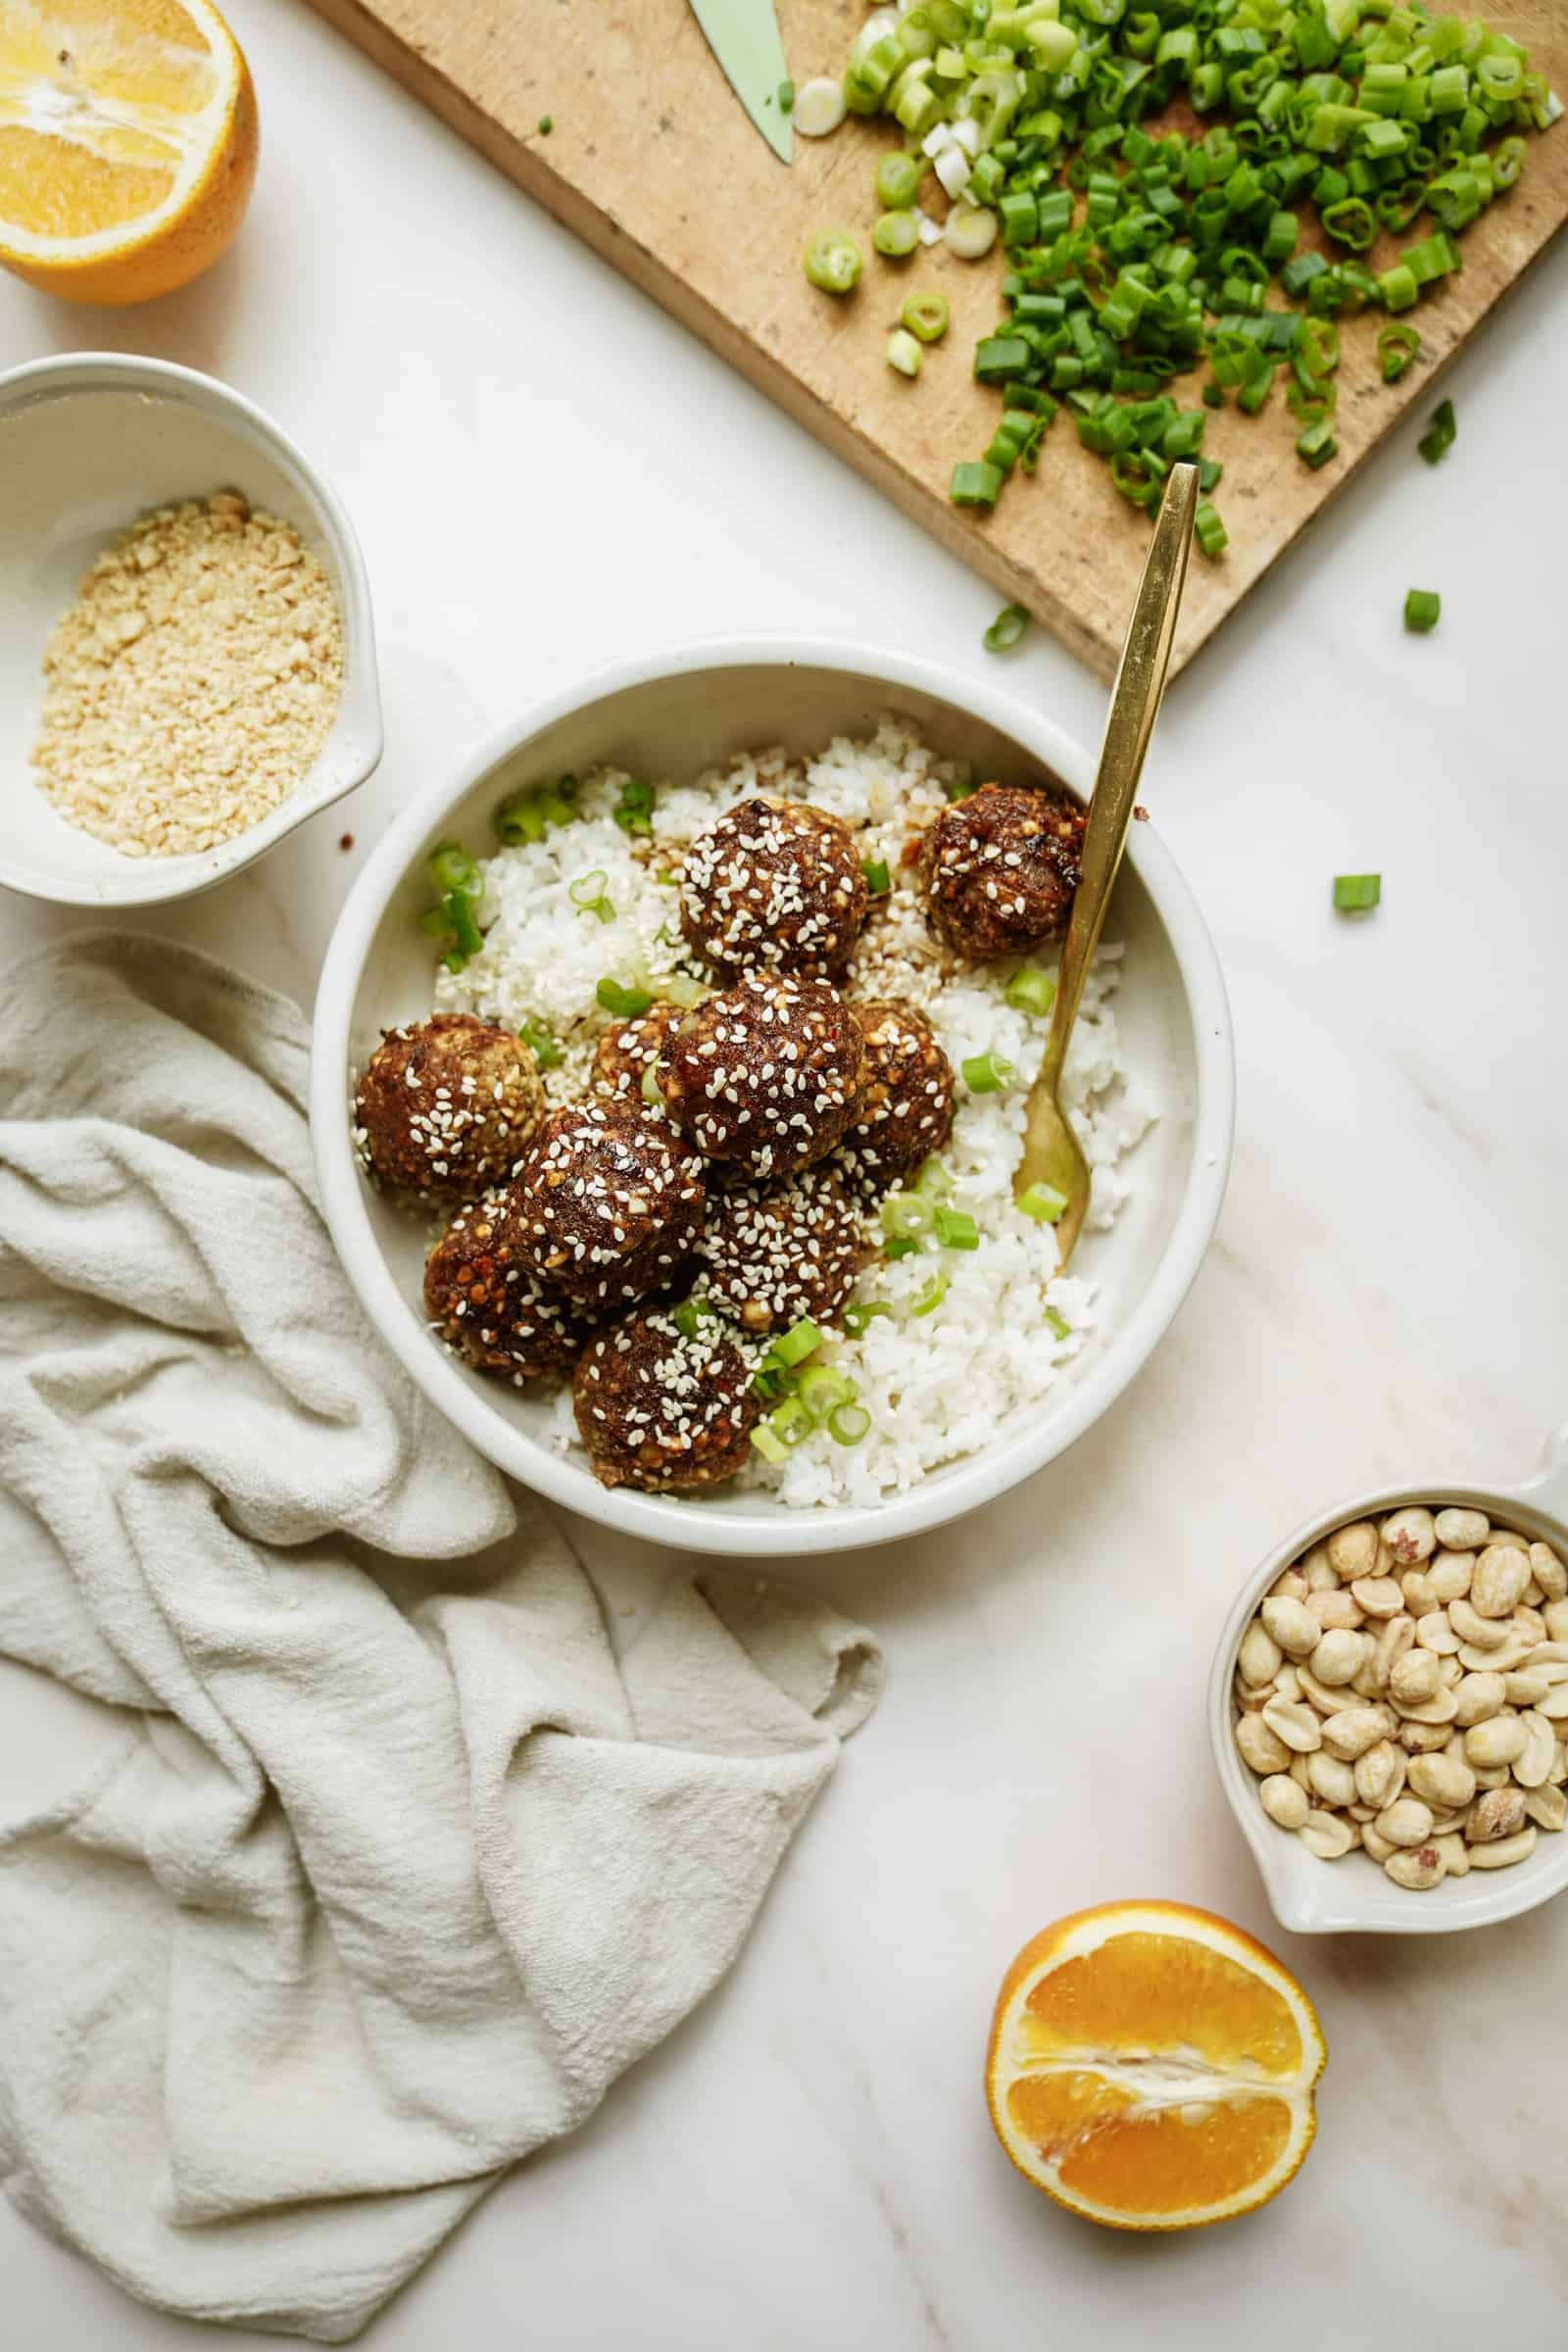 A bowl of lentil meatballs over rice with fresh ingredients